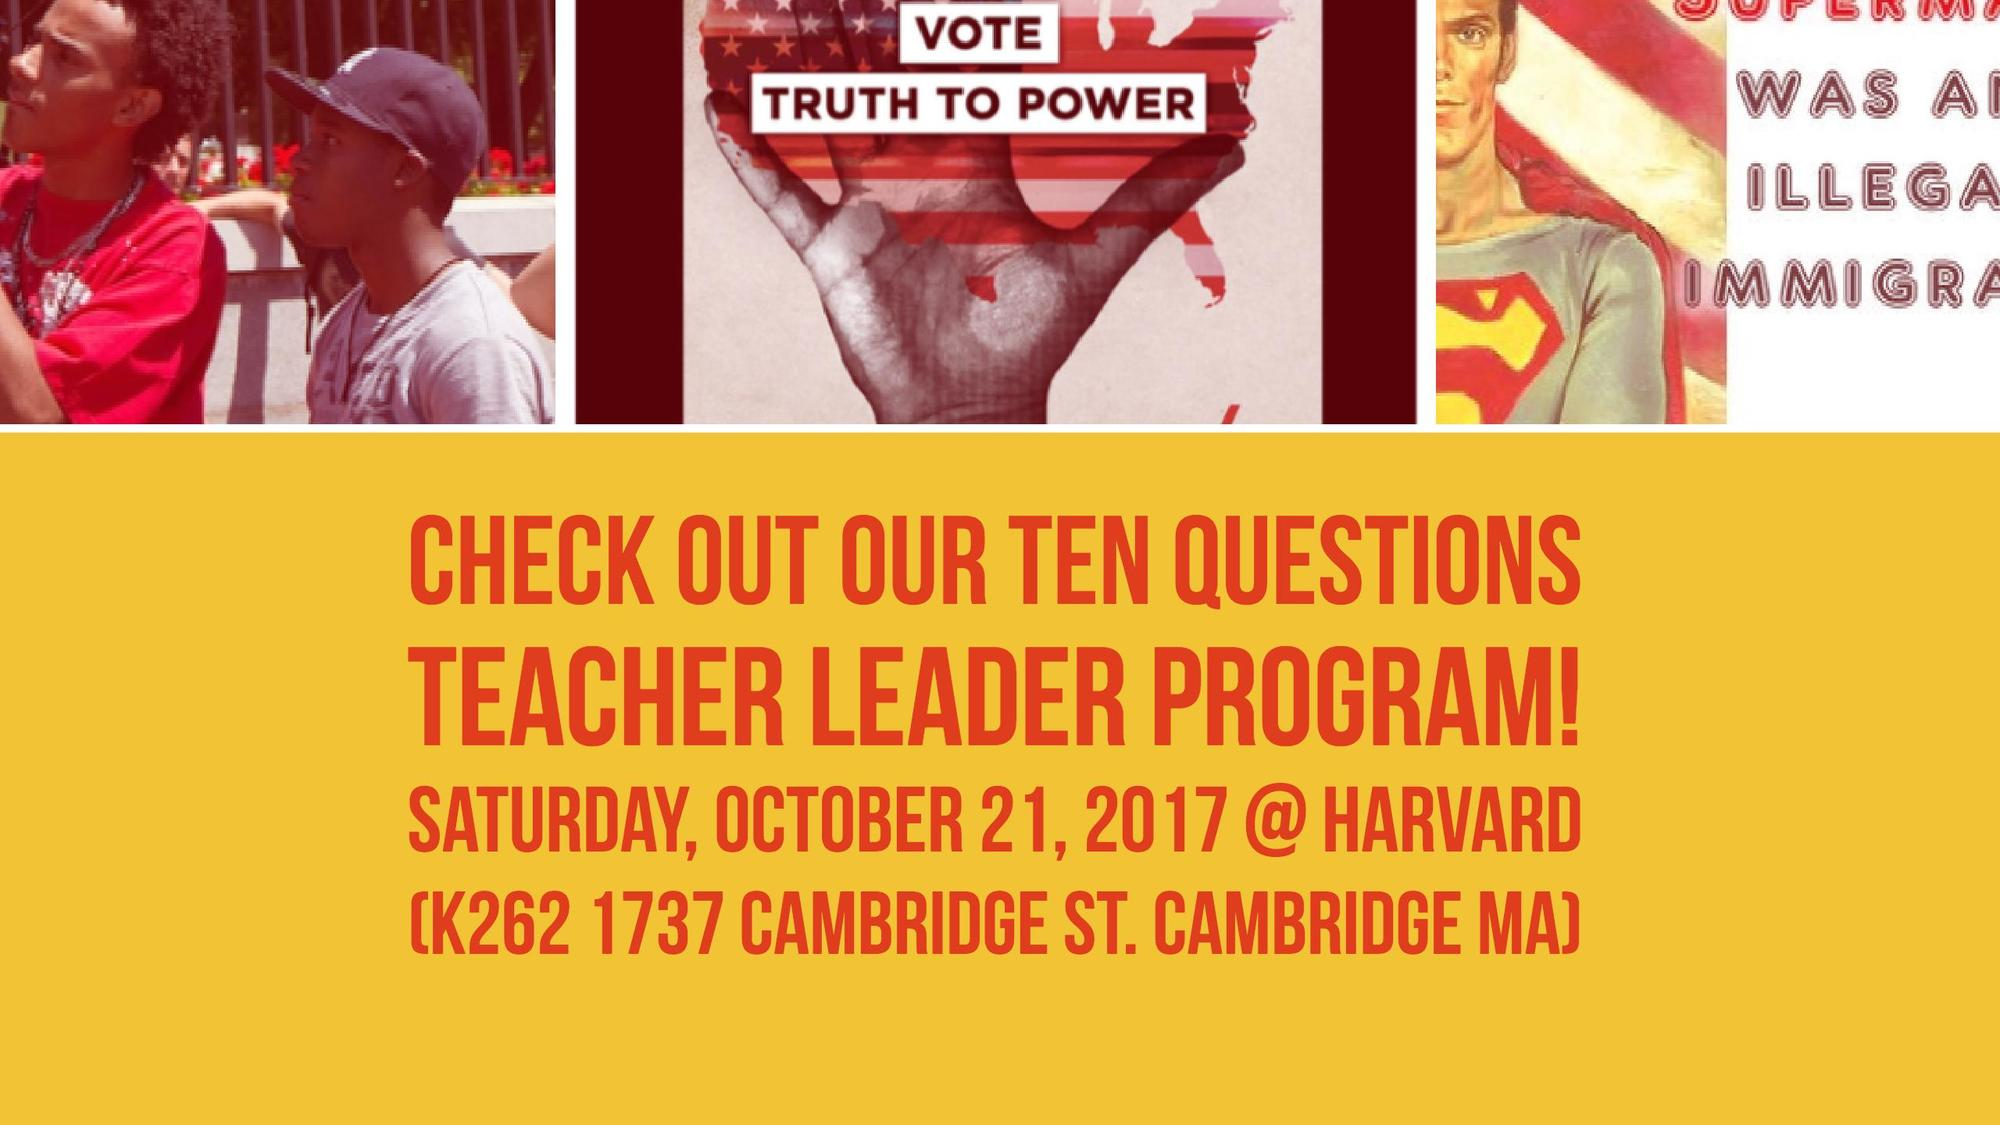 Teacher Leader Meeting on Saturday, Oct 21 2017